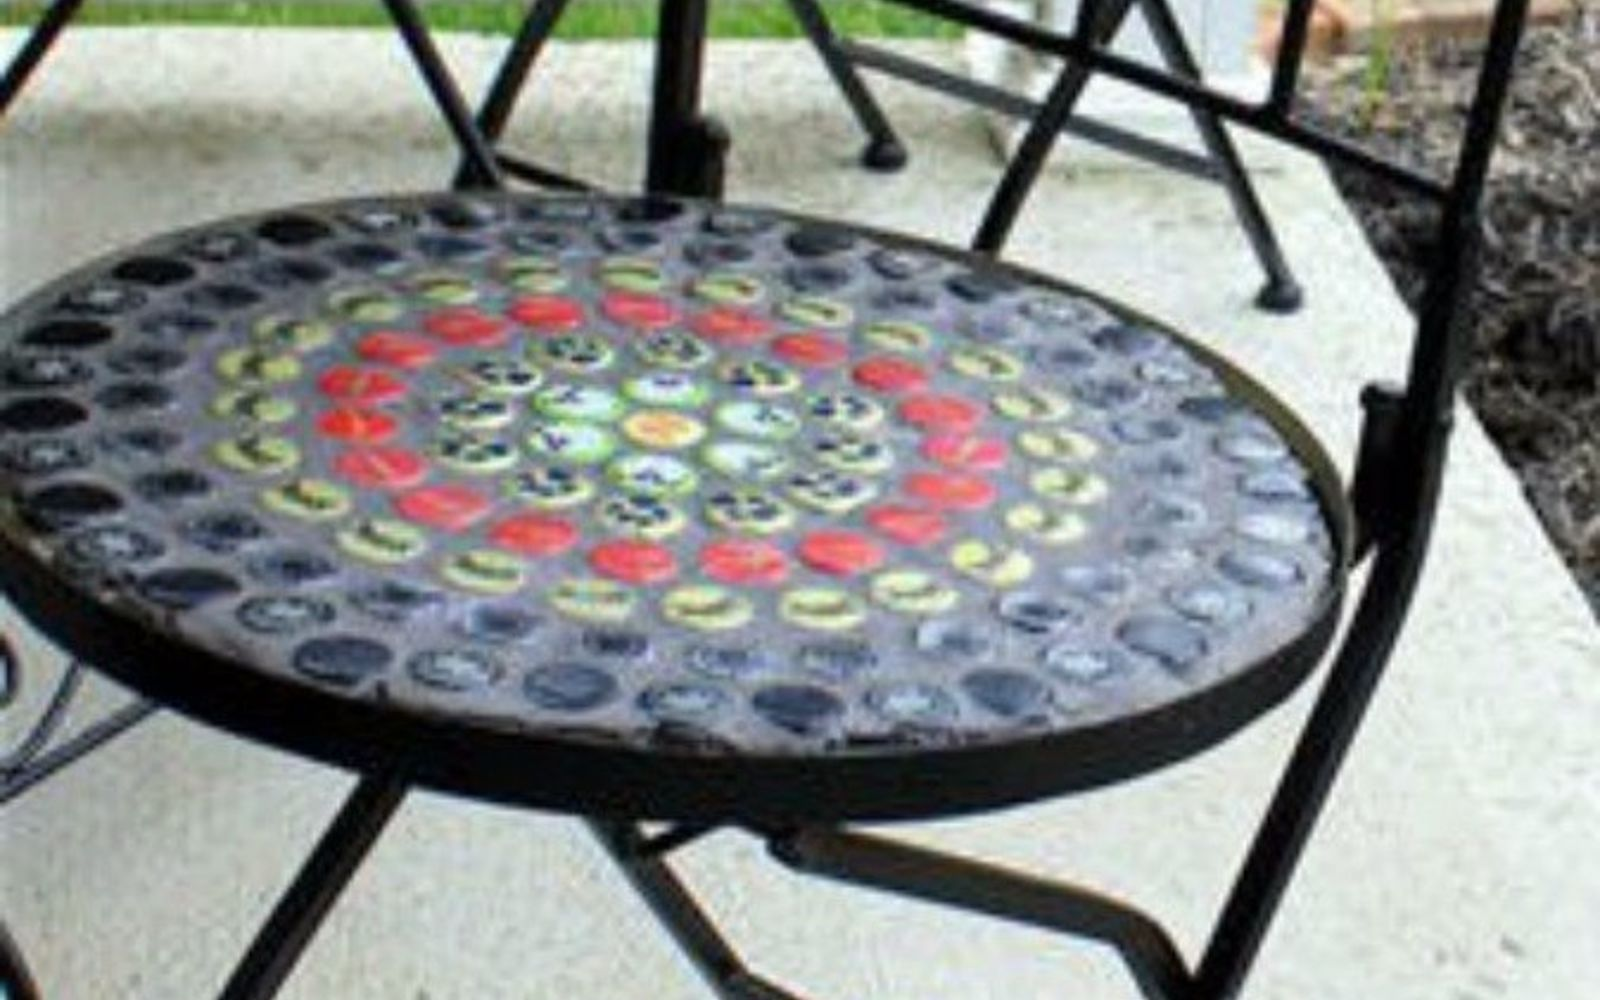 s save your bottle caps for these x crazy cool ideas, A rad mosaic metal patio chair